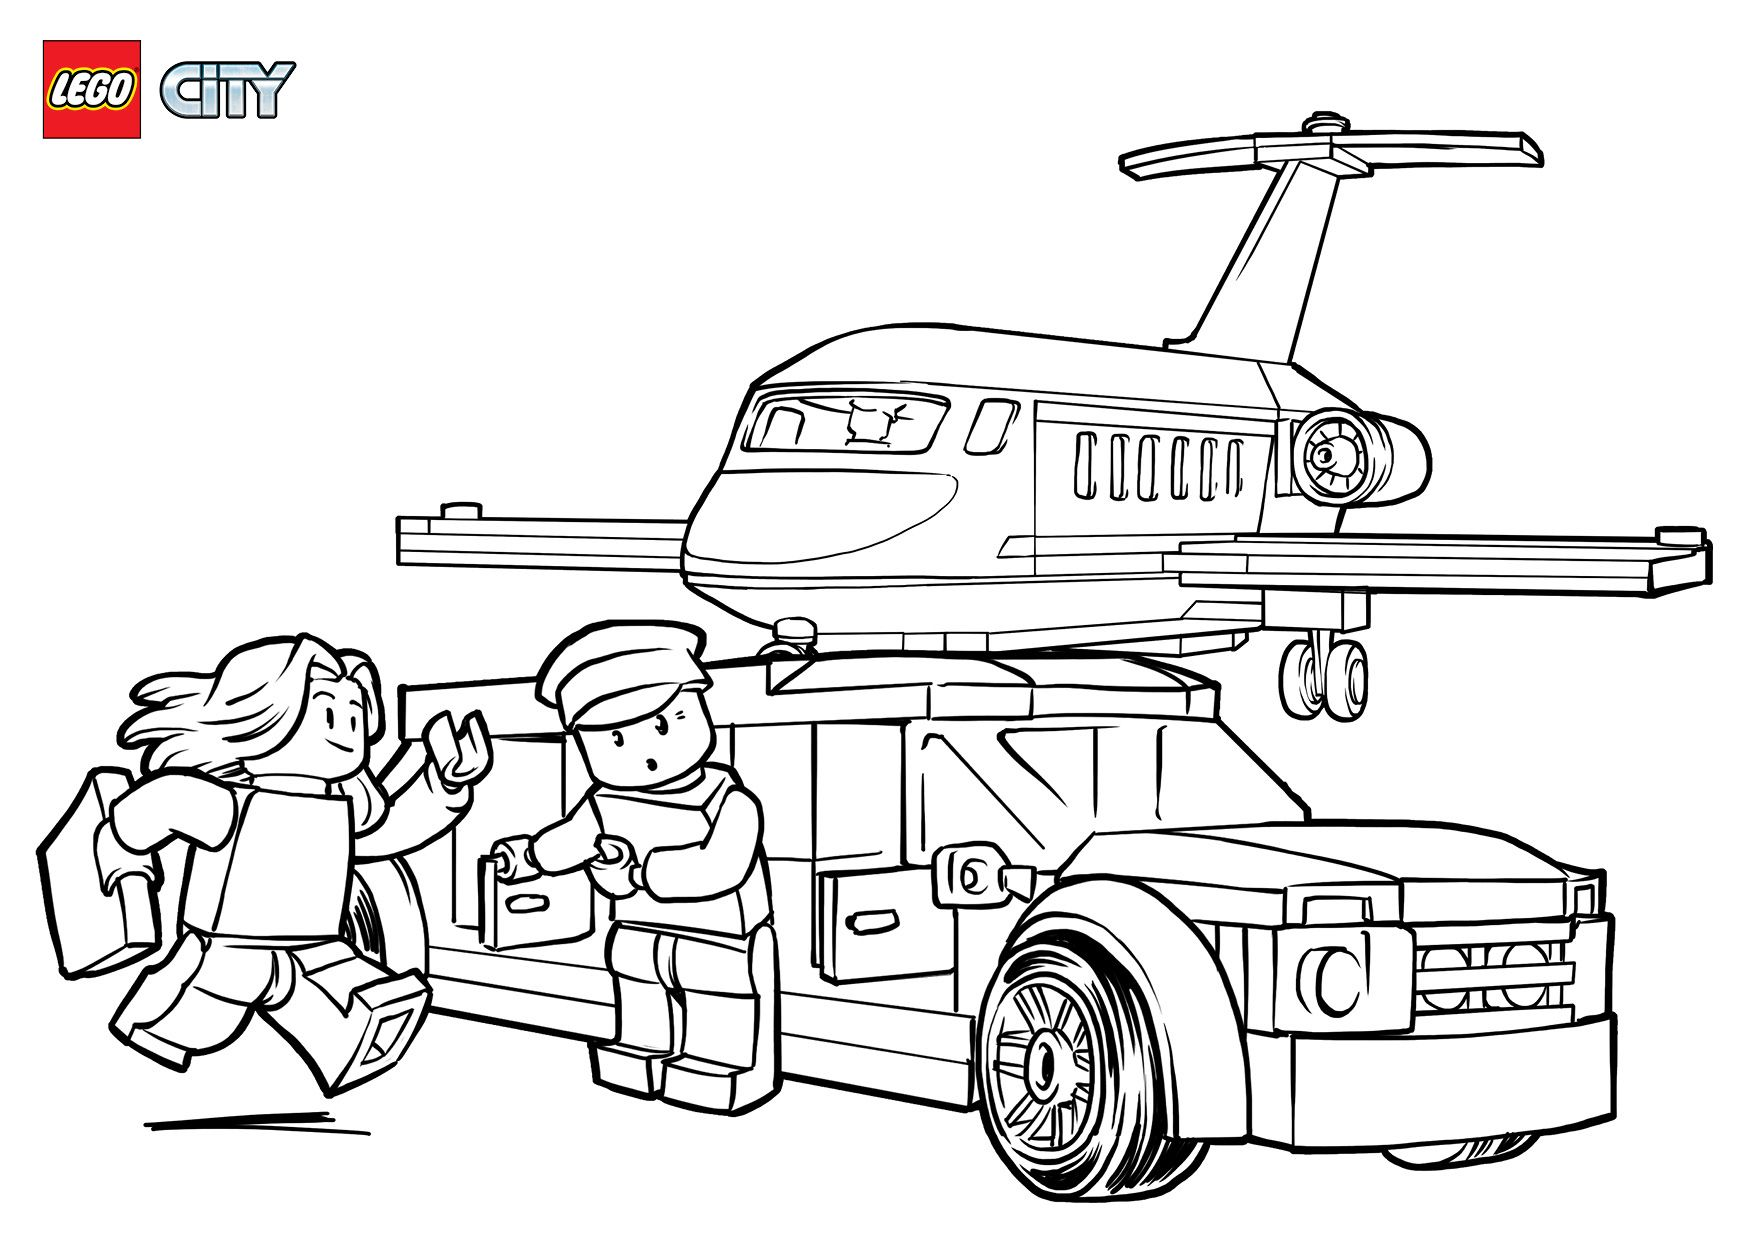 Lego Limo At Airport Coloring Page